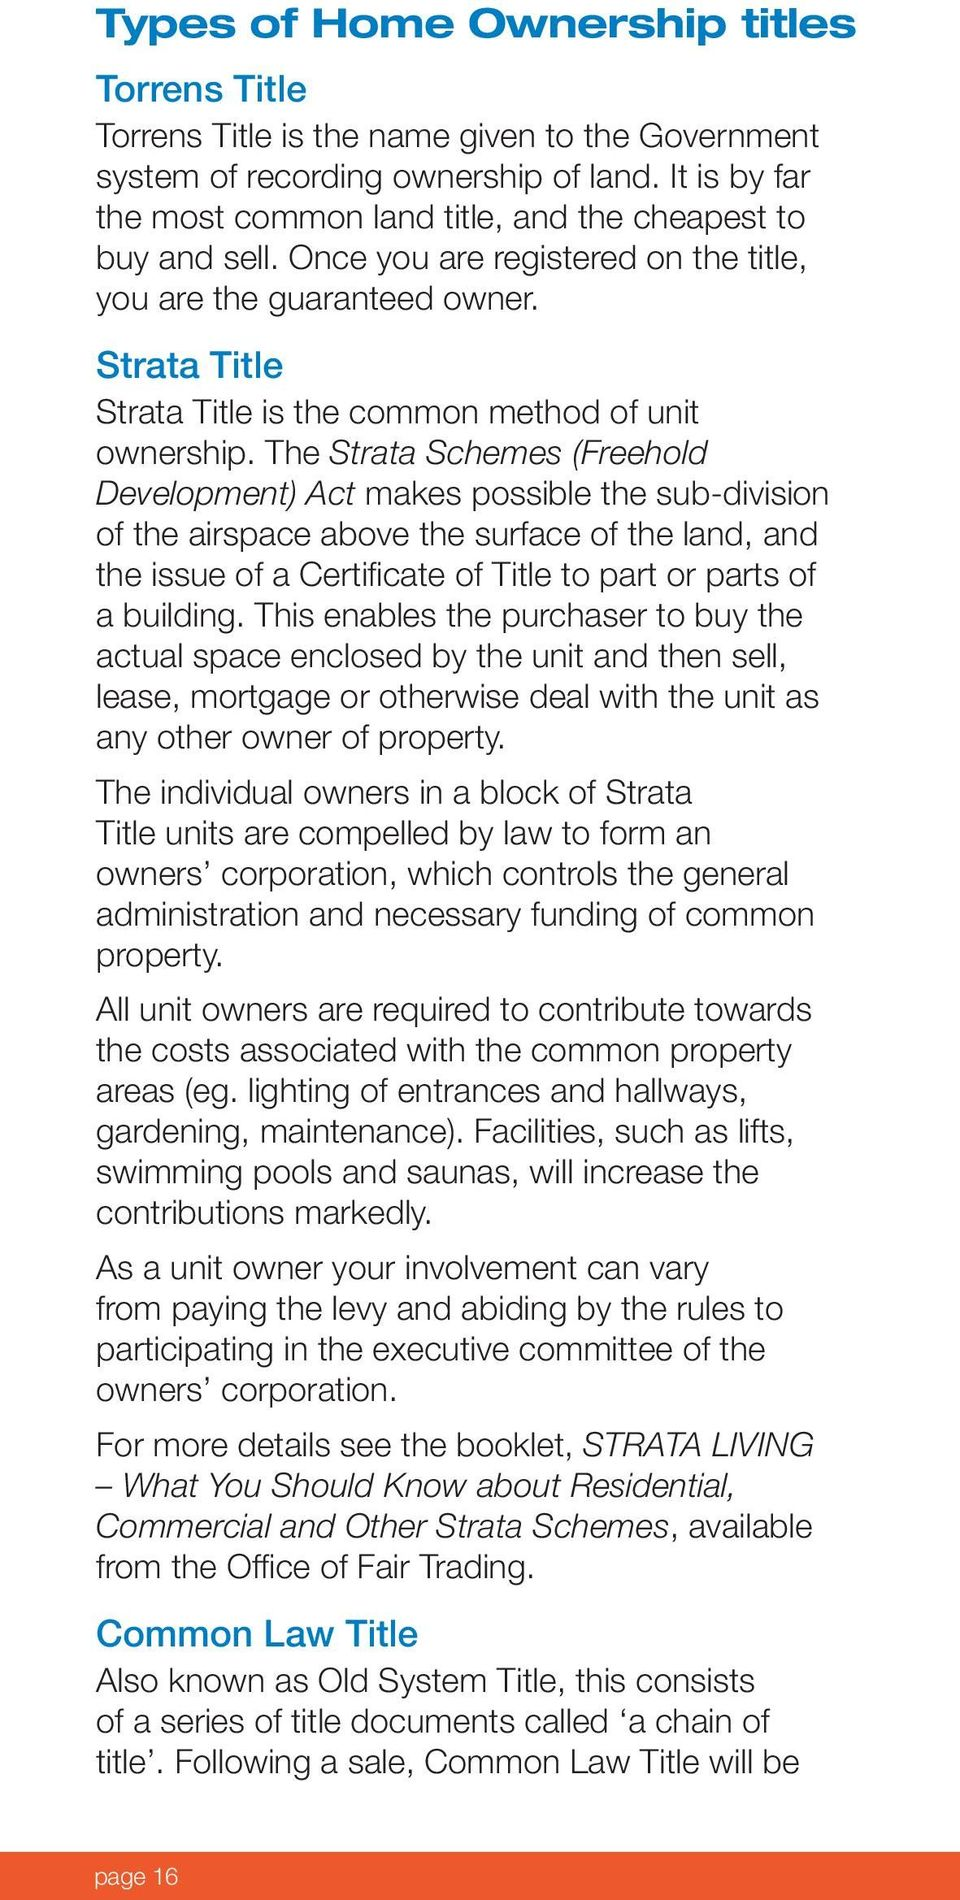 Strata Title Strata Title is the common method of unit ownership.